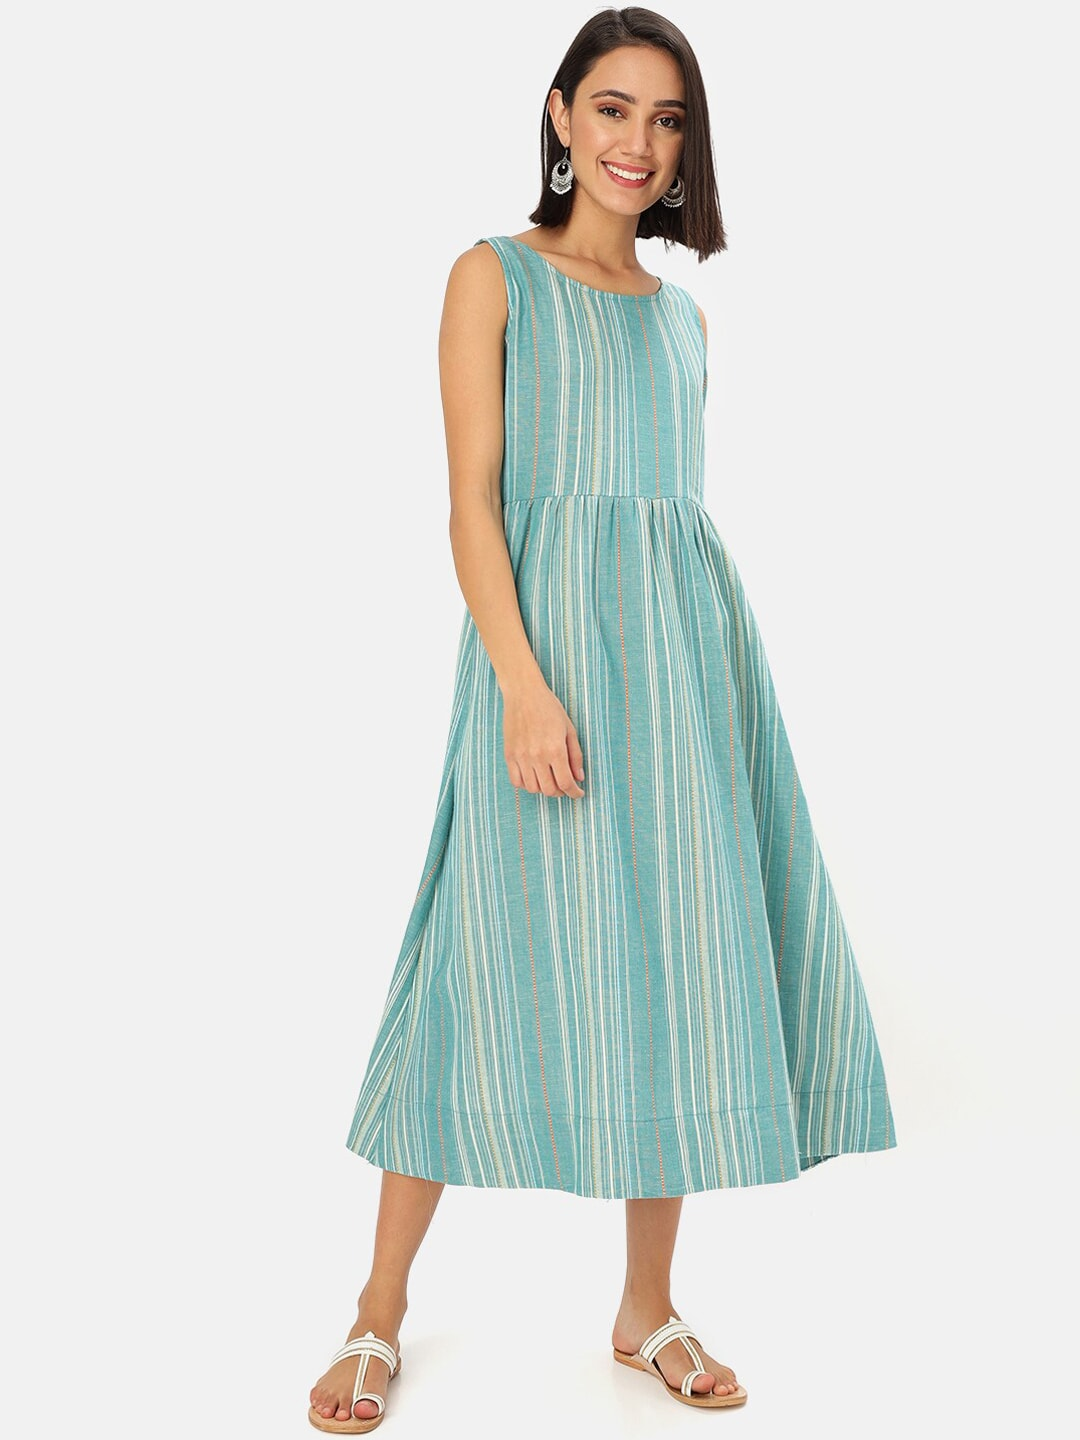 Saaki Women Teal Blue Striped A-Line Ethnic Dress